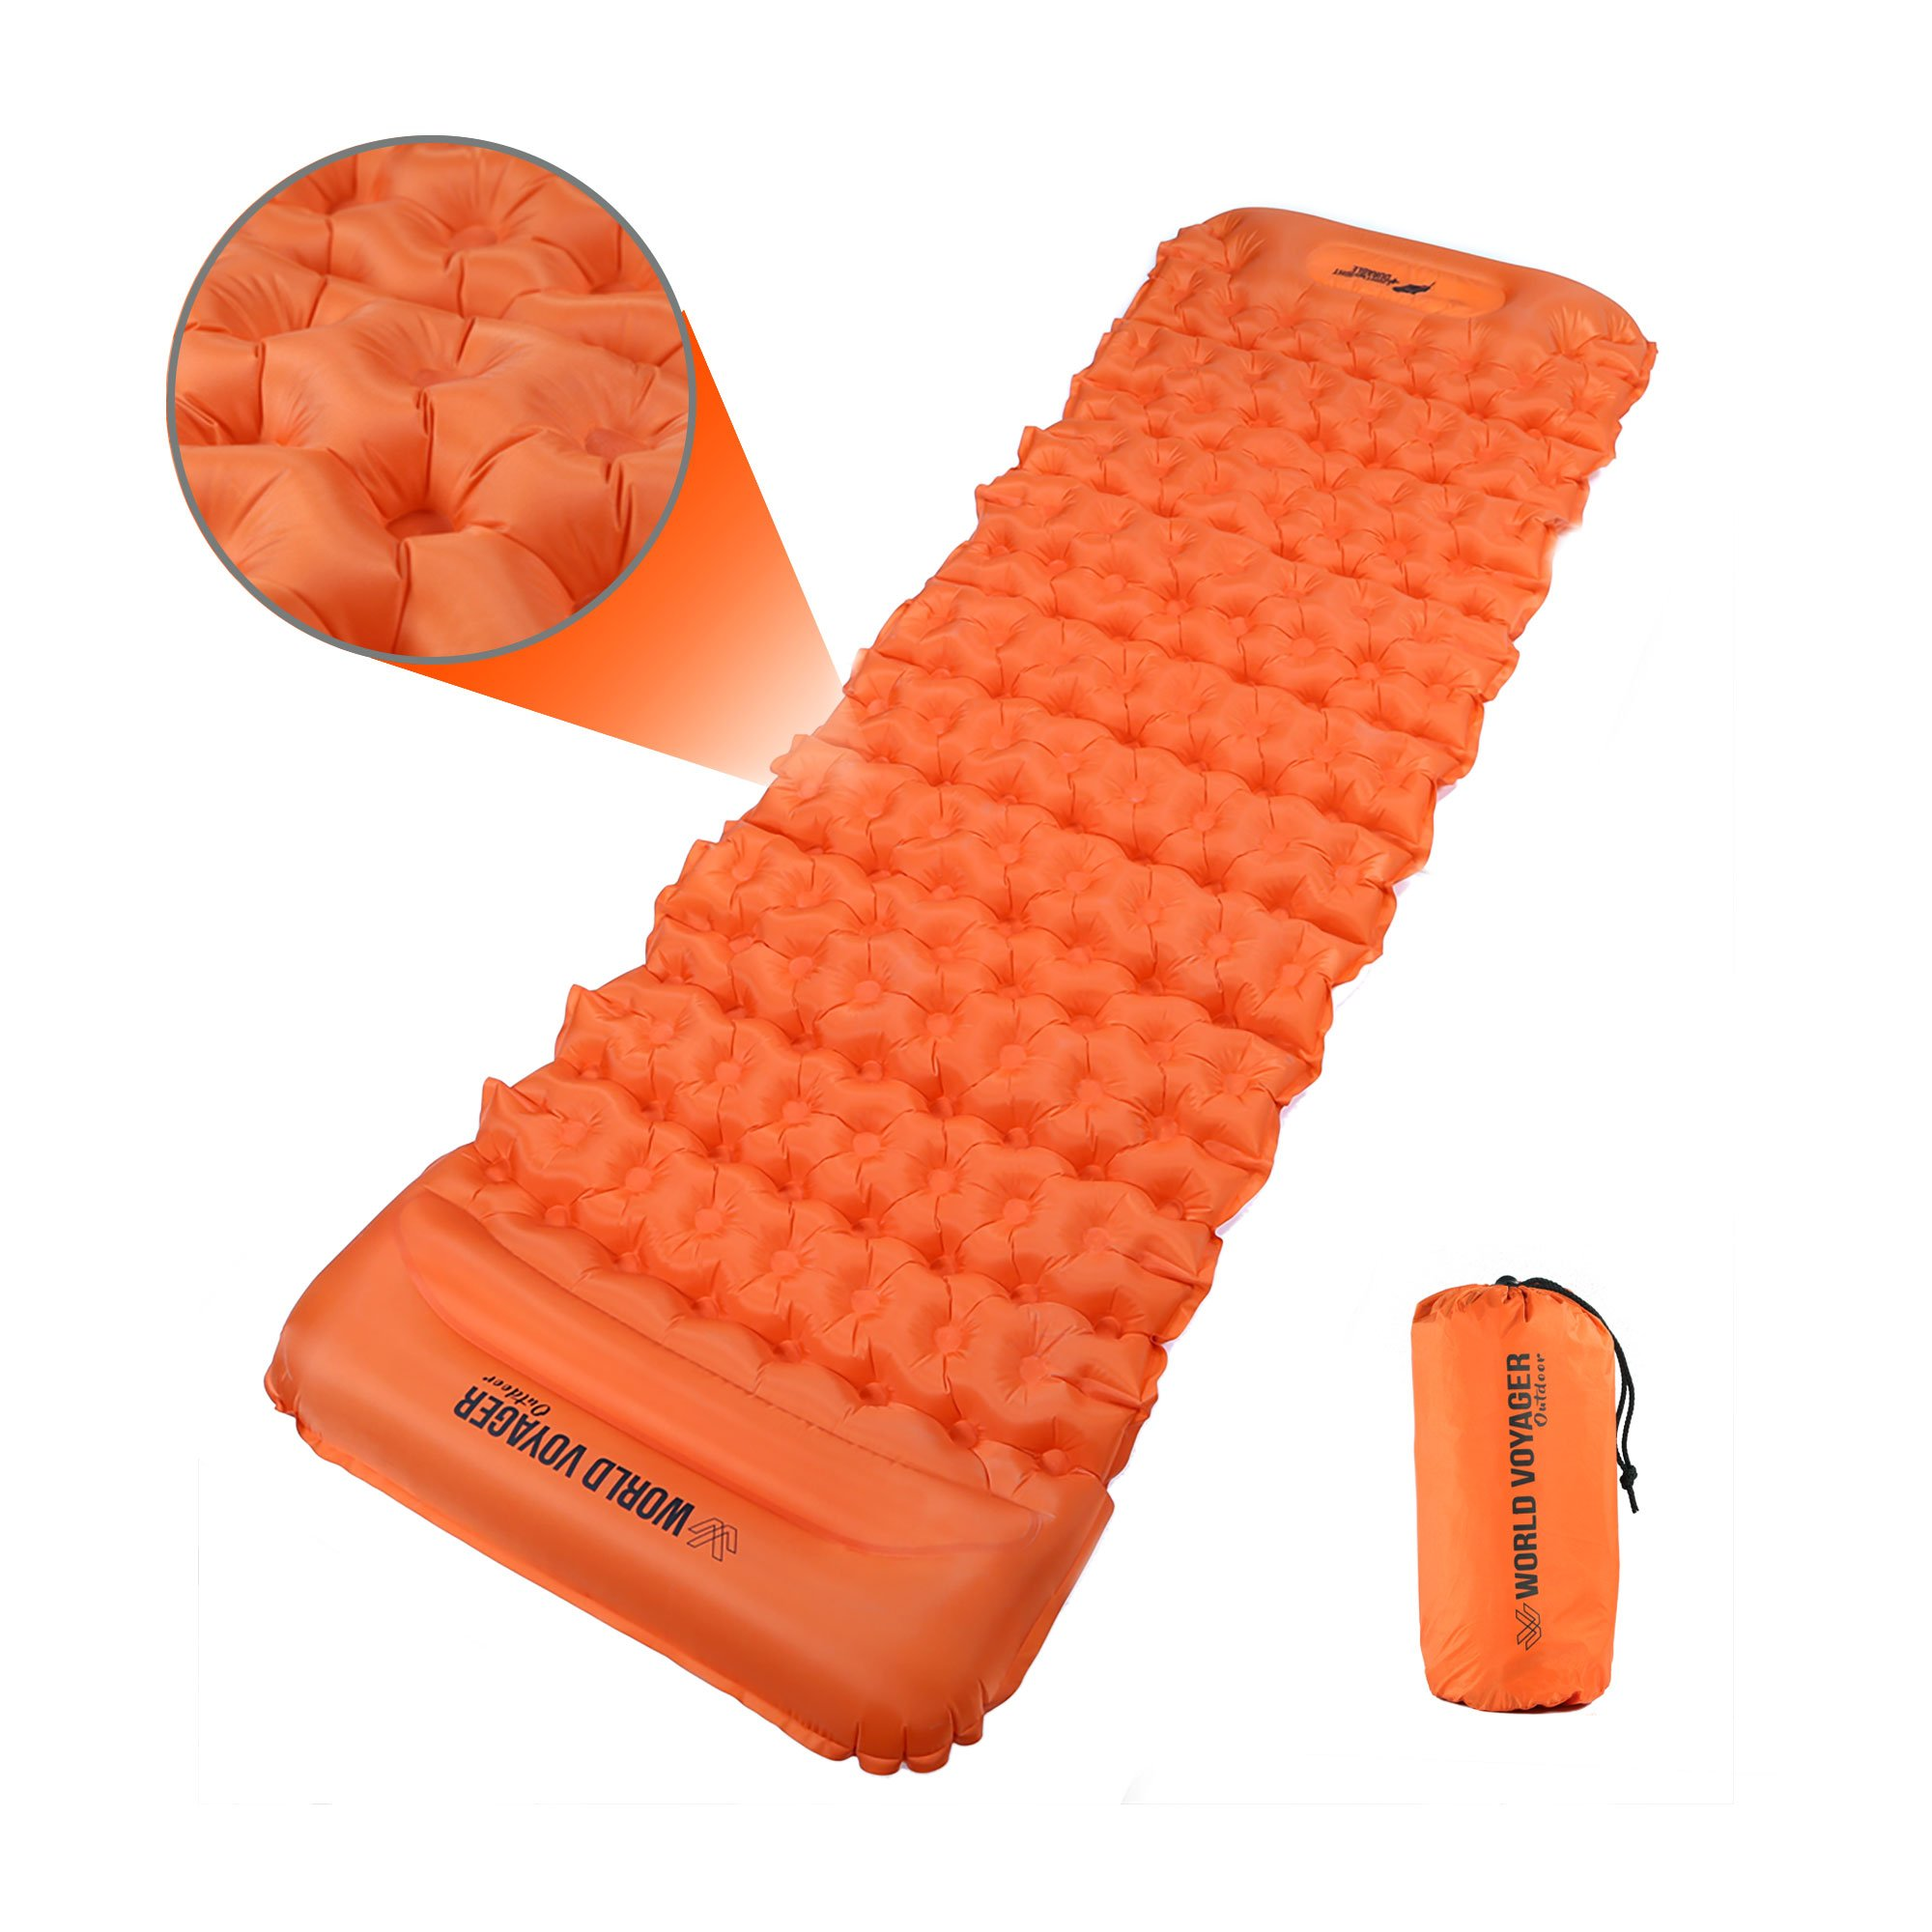 World Voyager Ultralight & Compact Sleeping Pad W/Built-in Pillow and easy-inflate technology